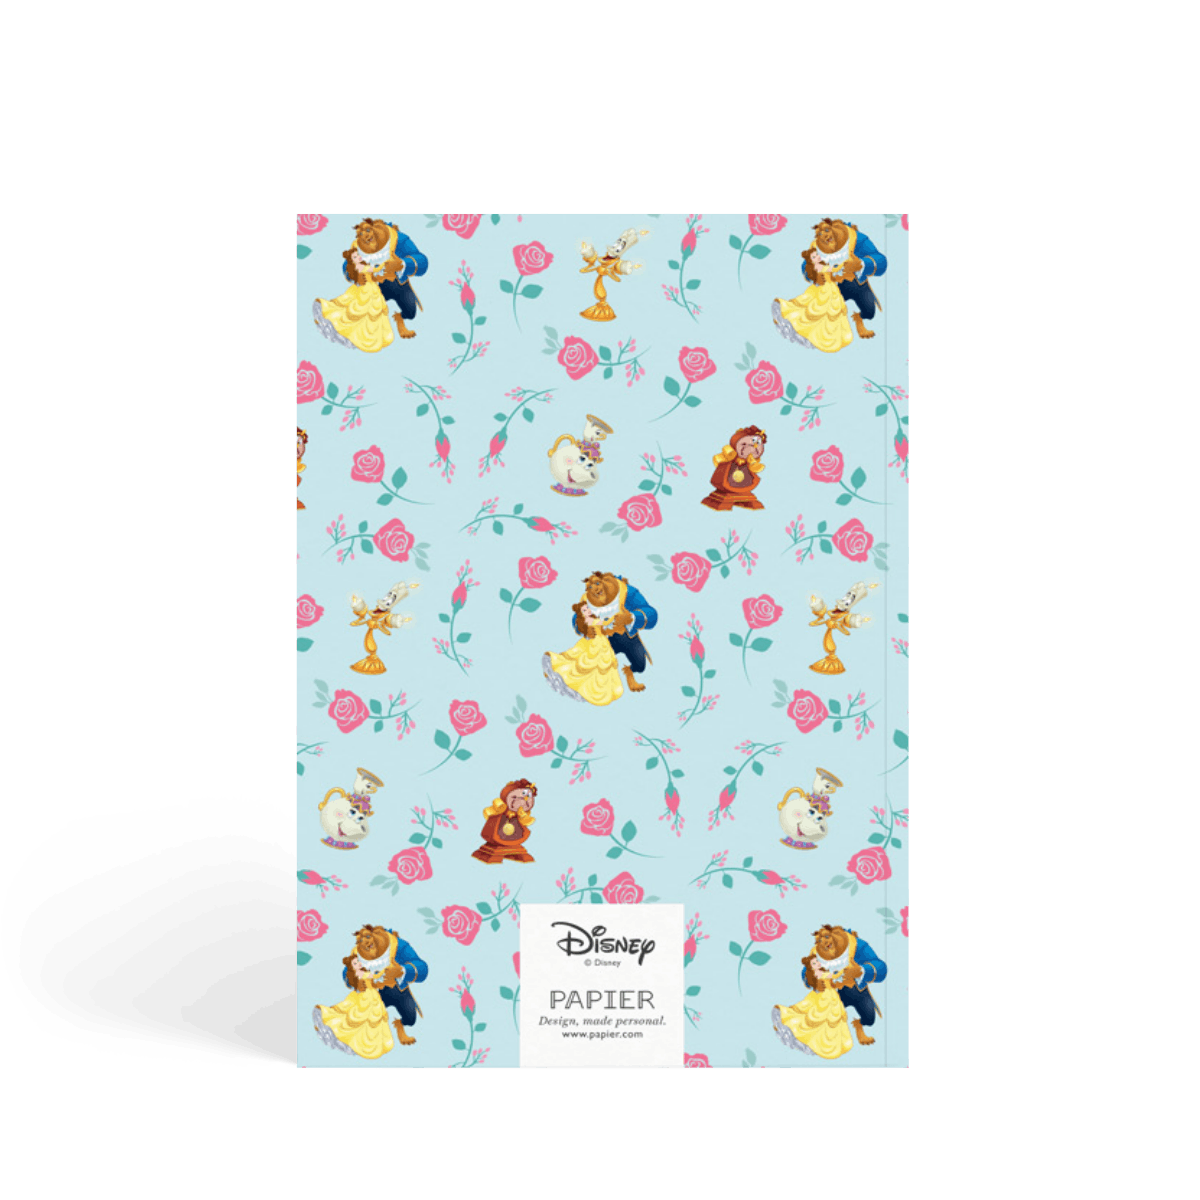 Https%3a%2f%2fwww.papier.com%2fproduct image%2f35869%2f5%2fbeauty the beast 8971 back 1523296335.png?ixlib=rb 1.1